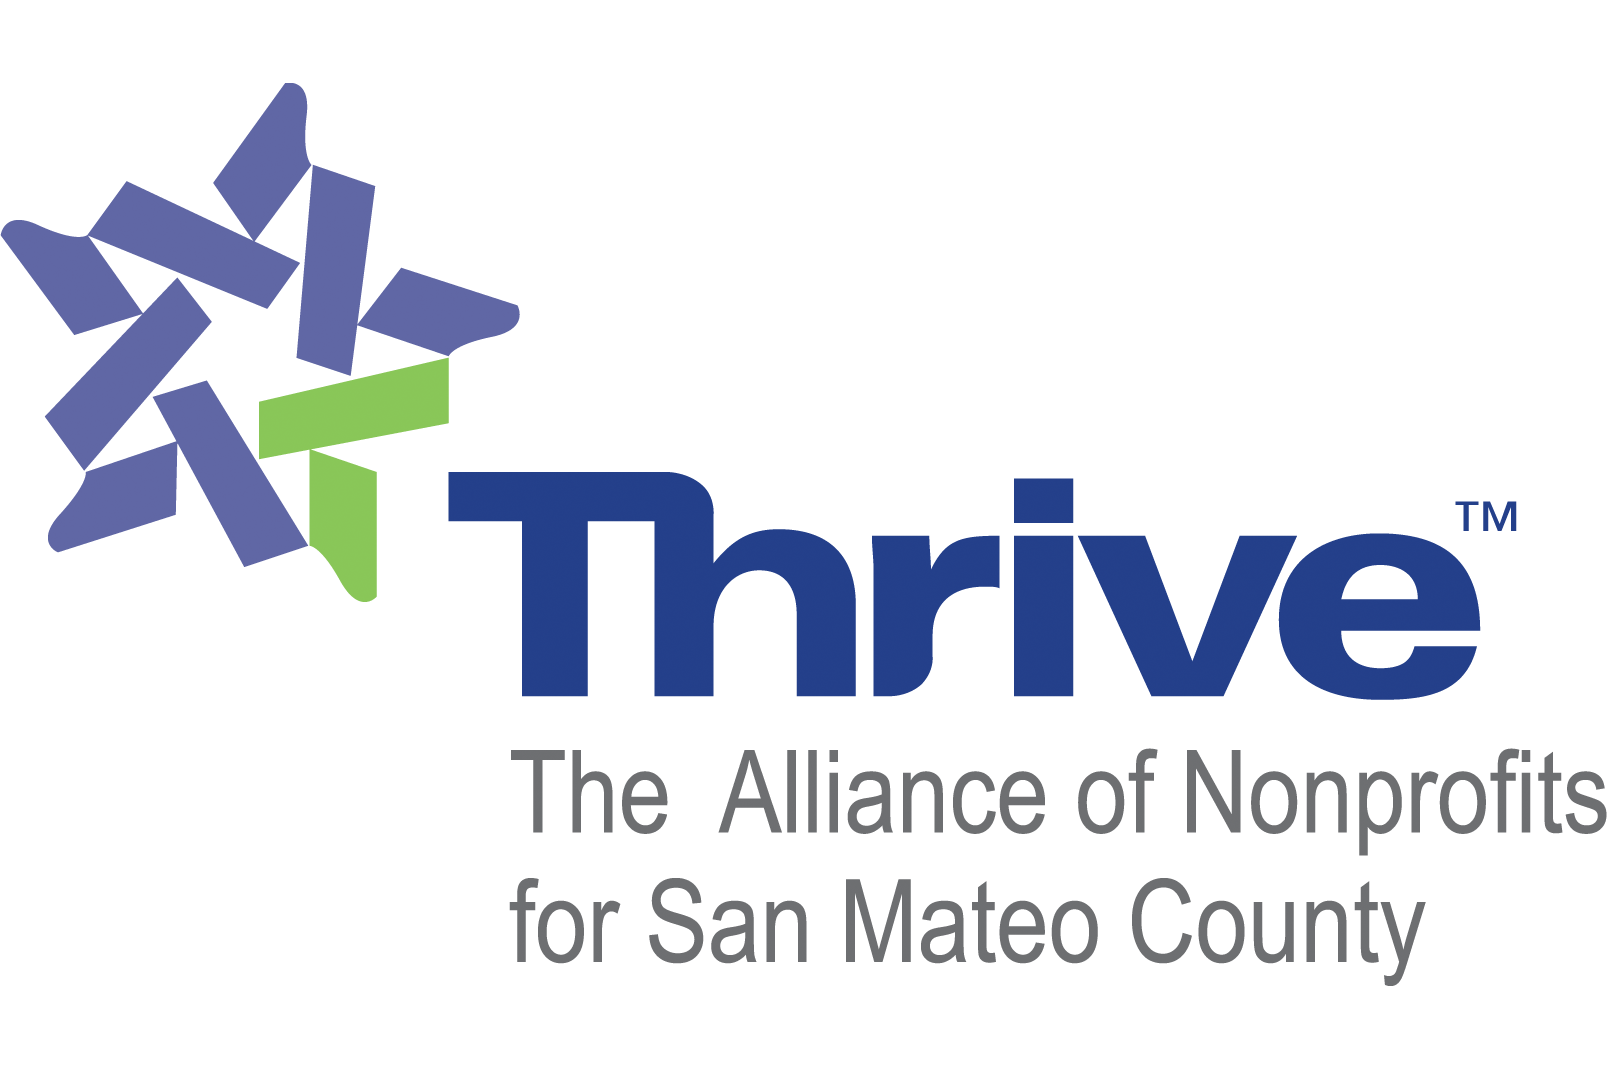 Thrive_Logo_Colot_trasparent.png